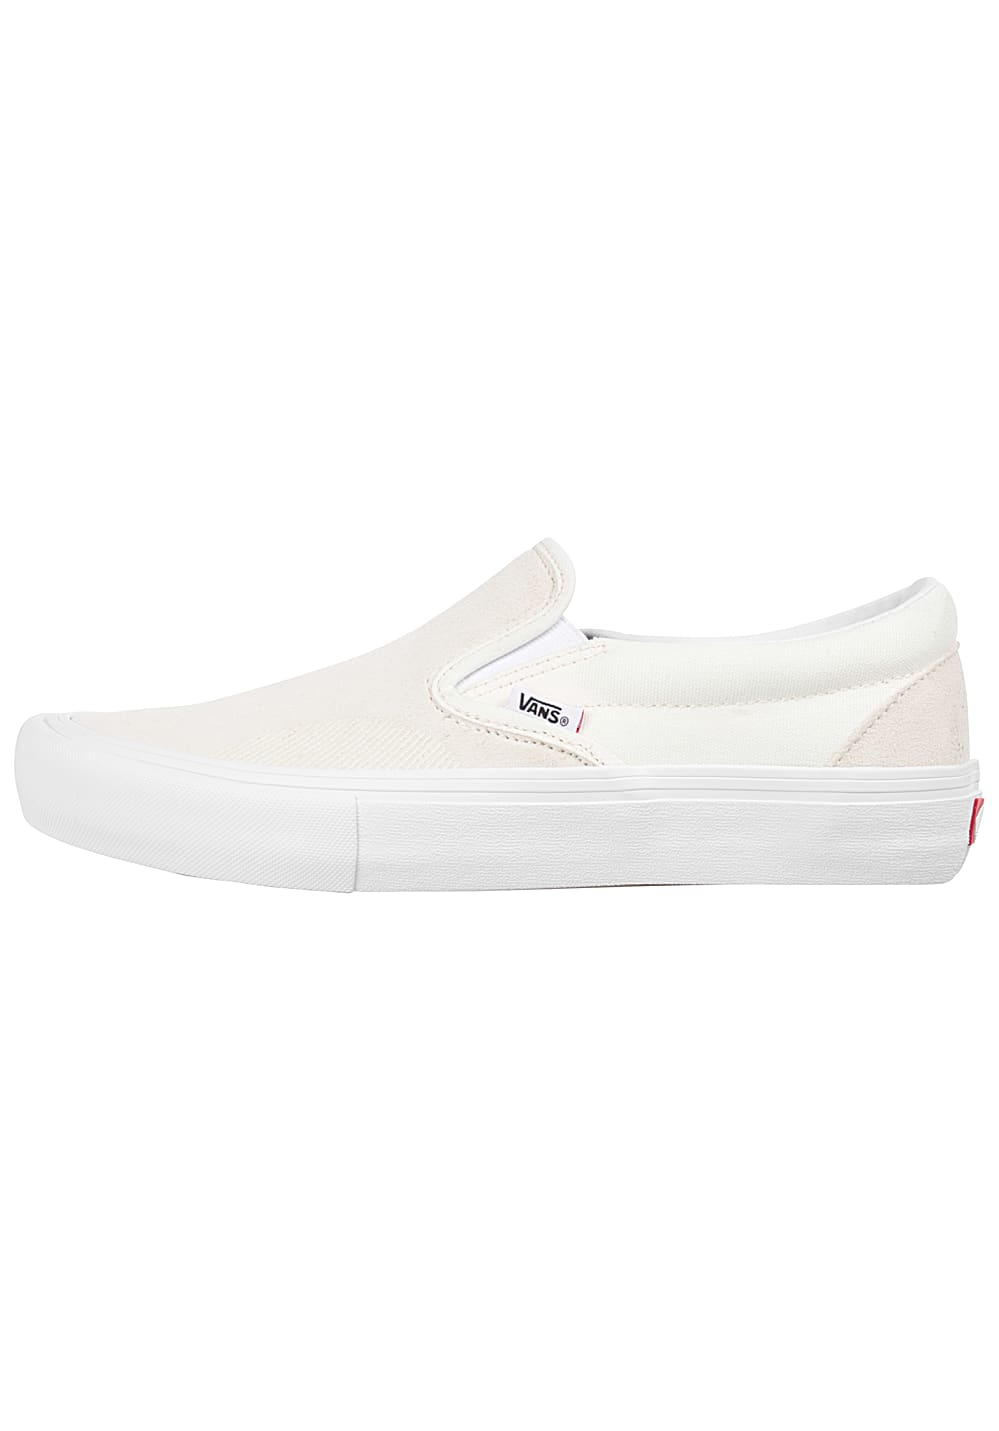 VANS Slip On Pro Slip Ons für Herren Weiß Planet Sports